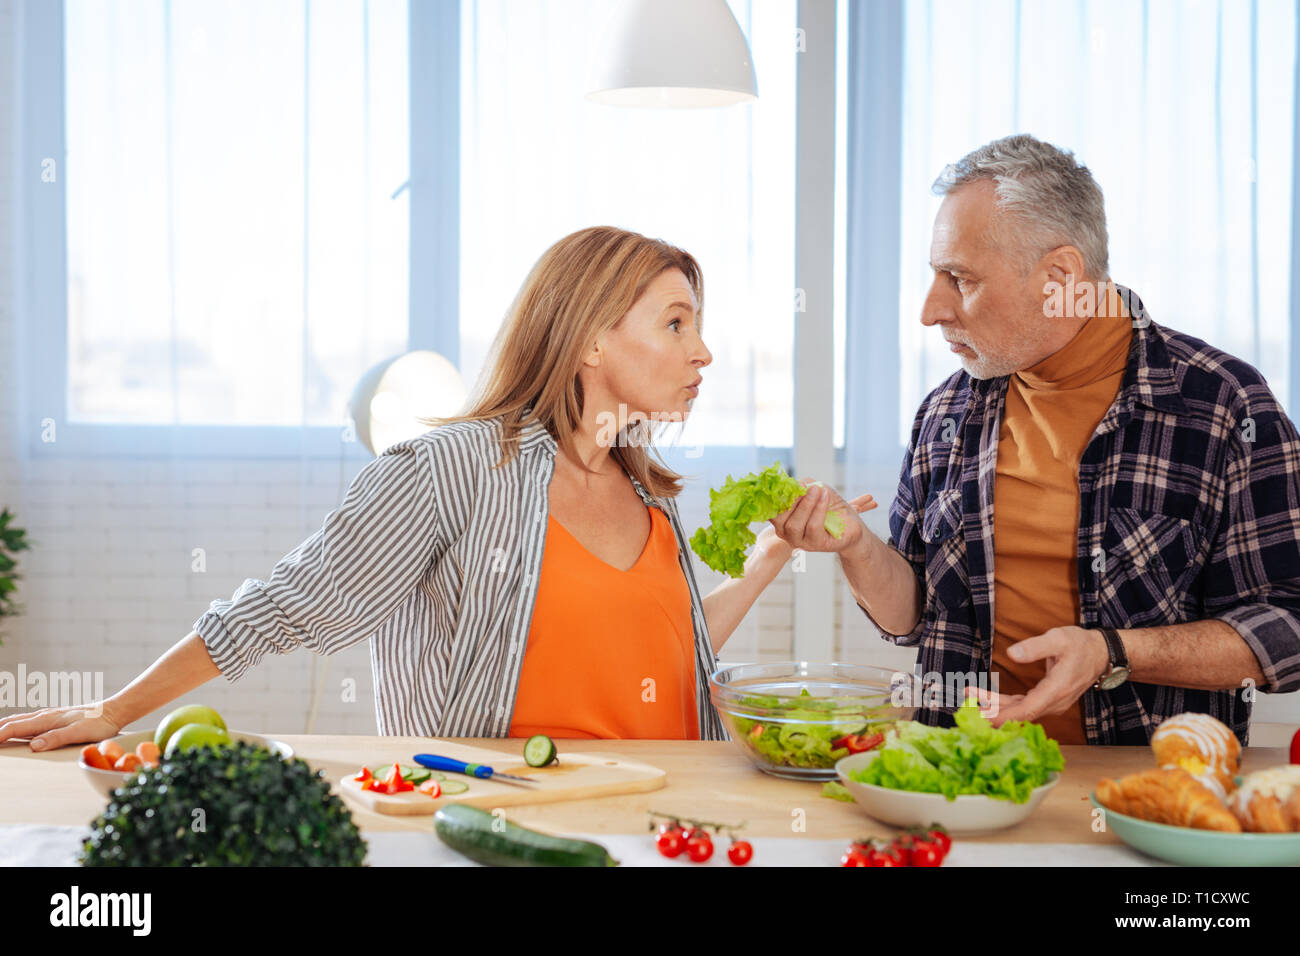 Emotional couple having argument while cooking salad for lunch - Stock Image